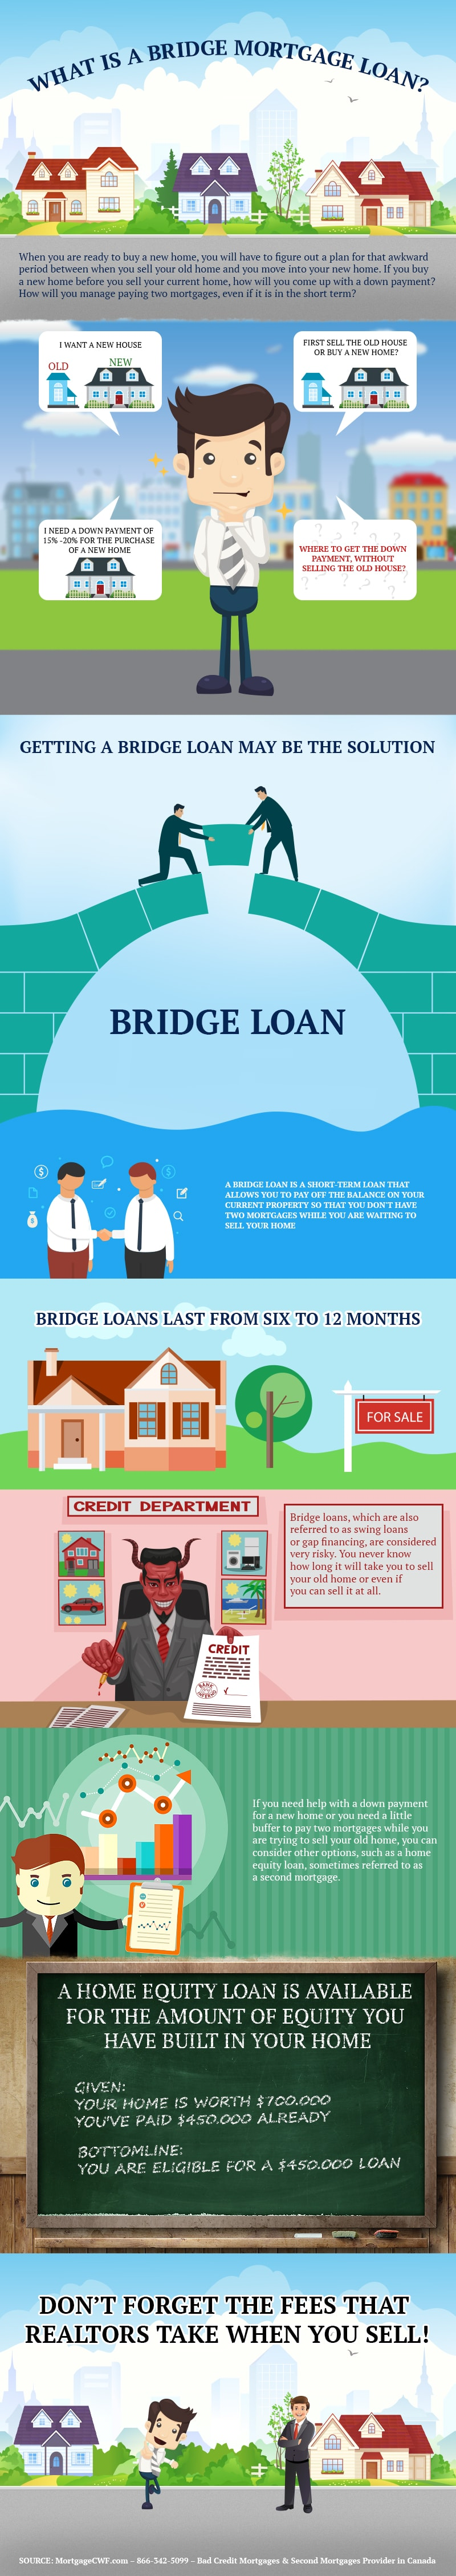 What is a Bridge Mortgage Loan - Infographic